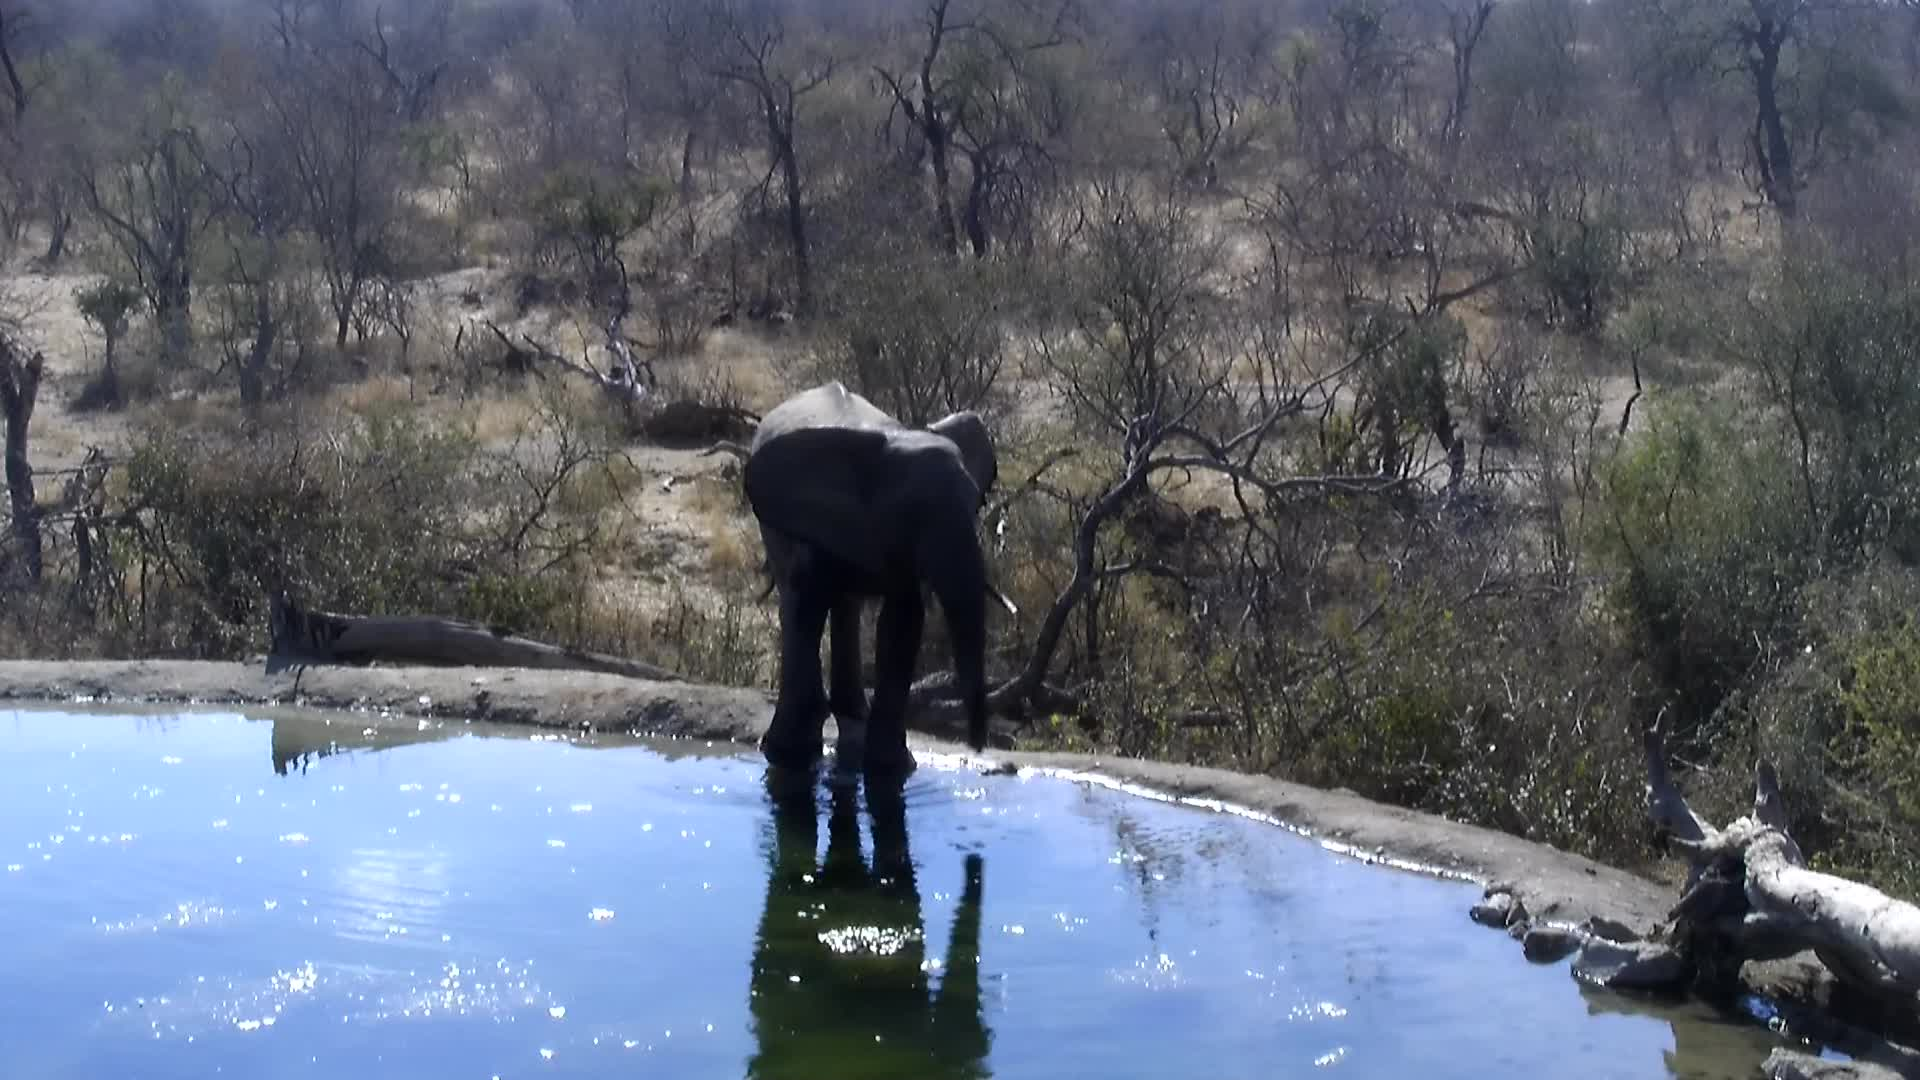 VIDEO: Elephant's reaction to smelling Lions at Rosie's Pan.